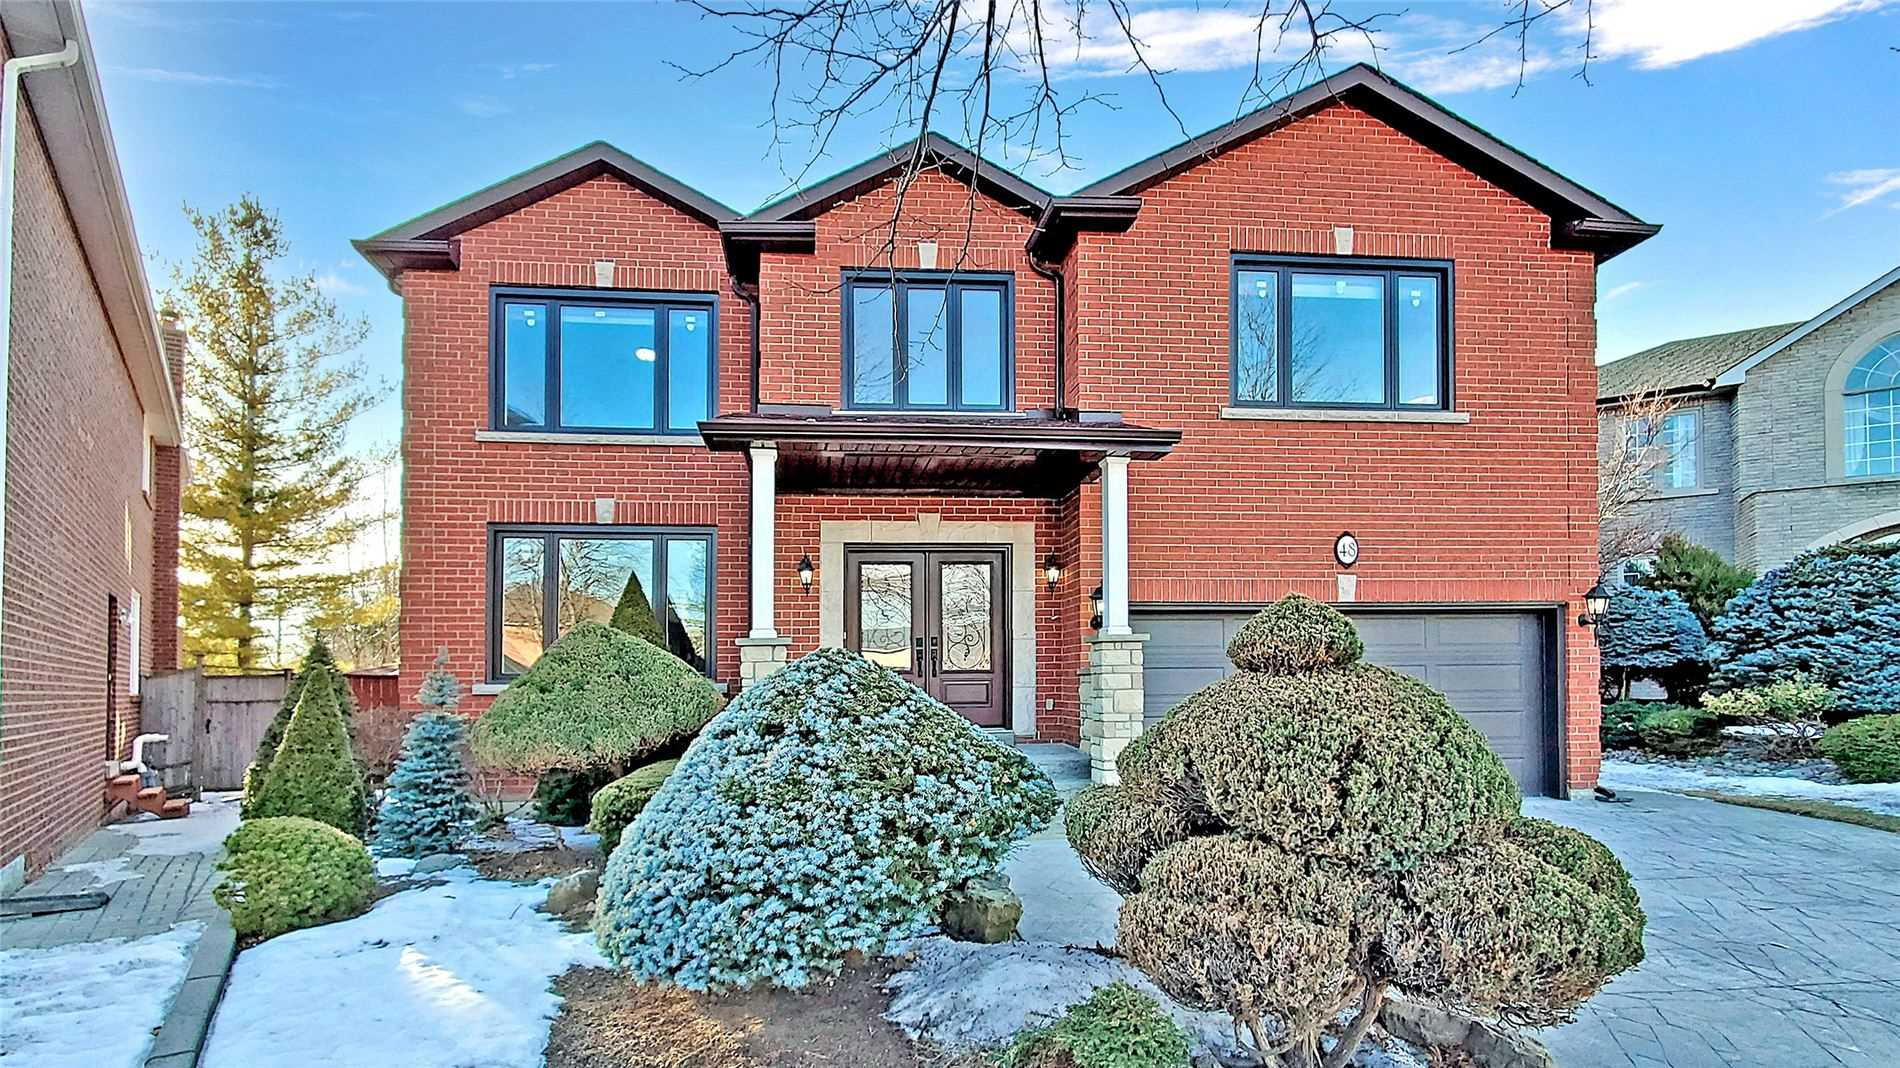 48 Wilfred Crt